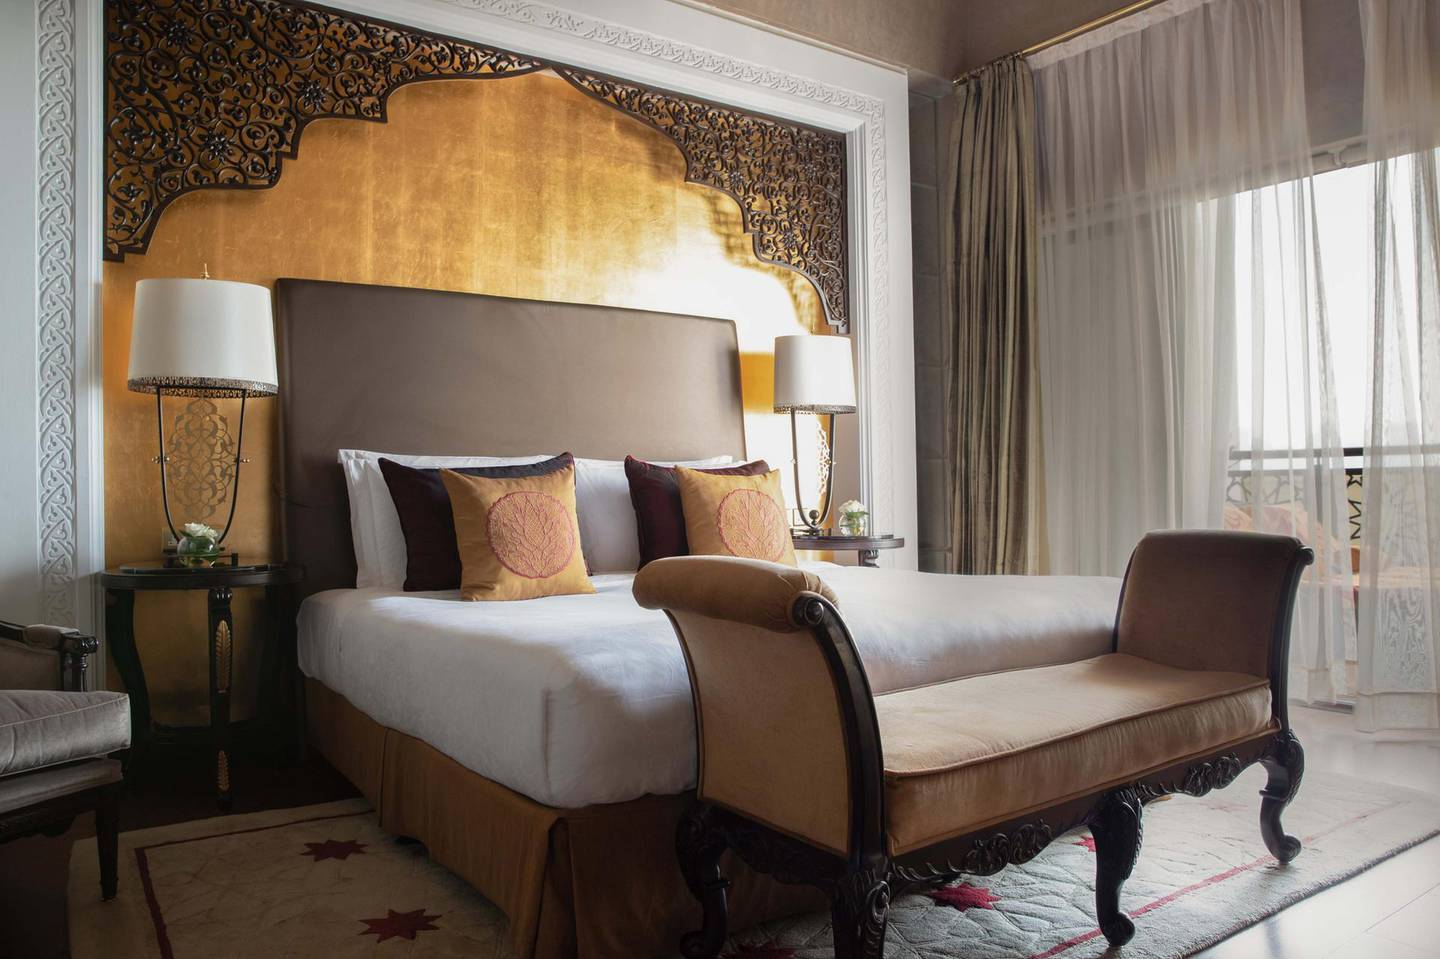 Jumeirah Zabeel Saray - Imperial Two Bedroom Suite - King Bed. Courtesy Jumeirah Zabeel Saray